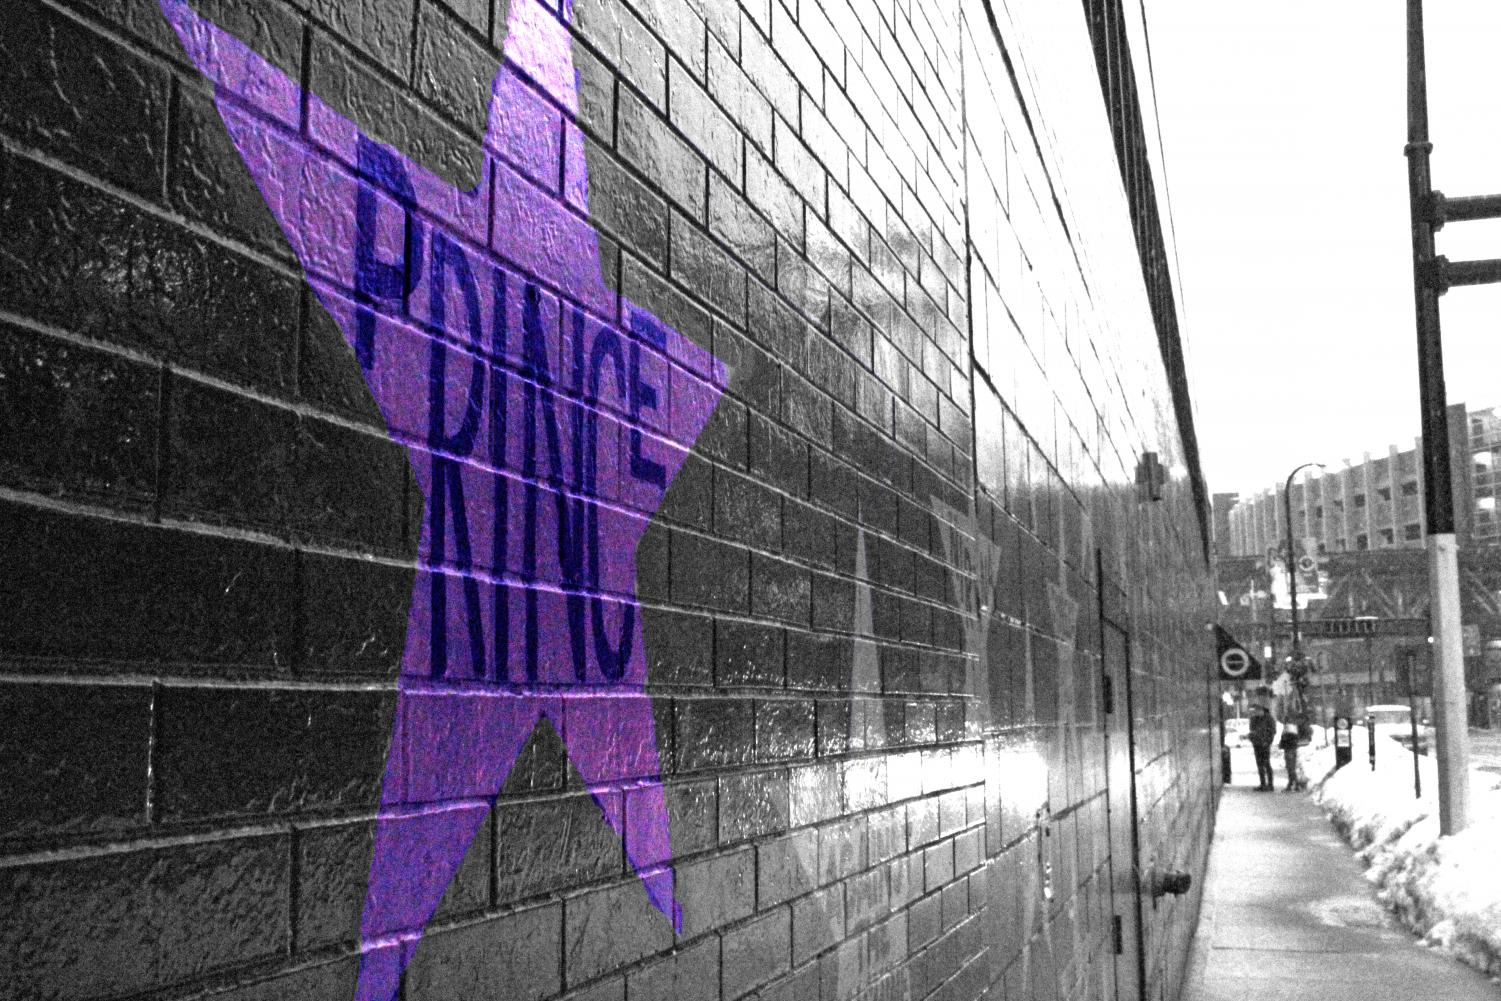 Prince's star stands out on the wall of First Avenue. Many musicians of the past have made their mark on the Minneapolis music scene.